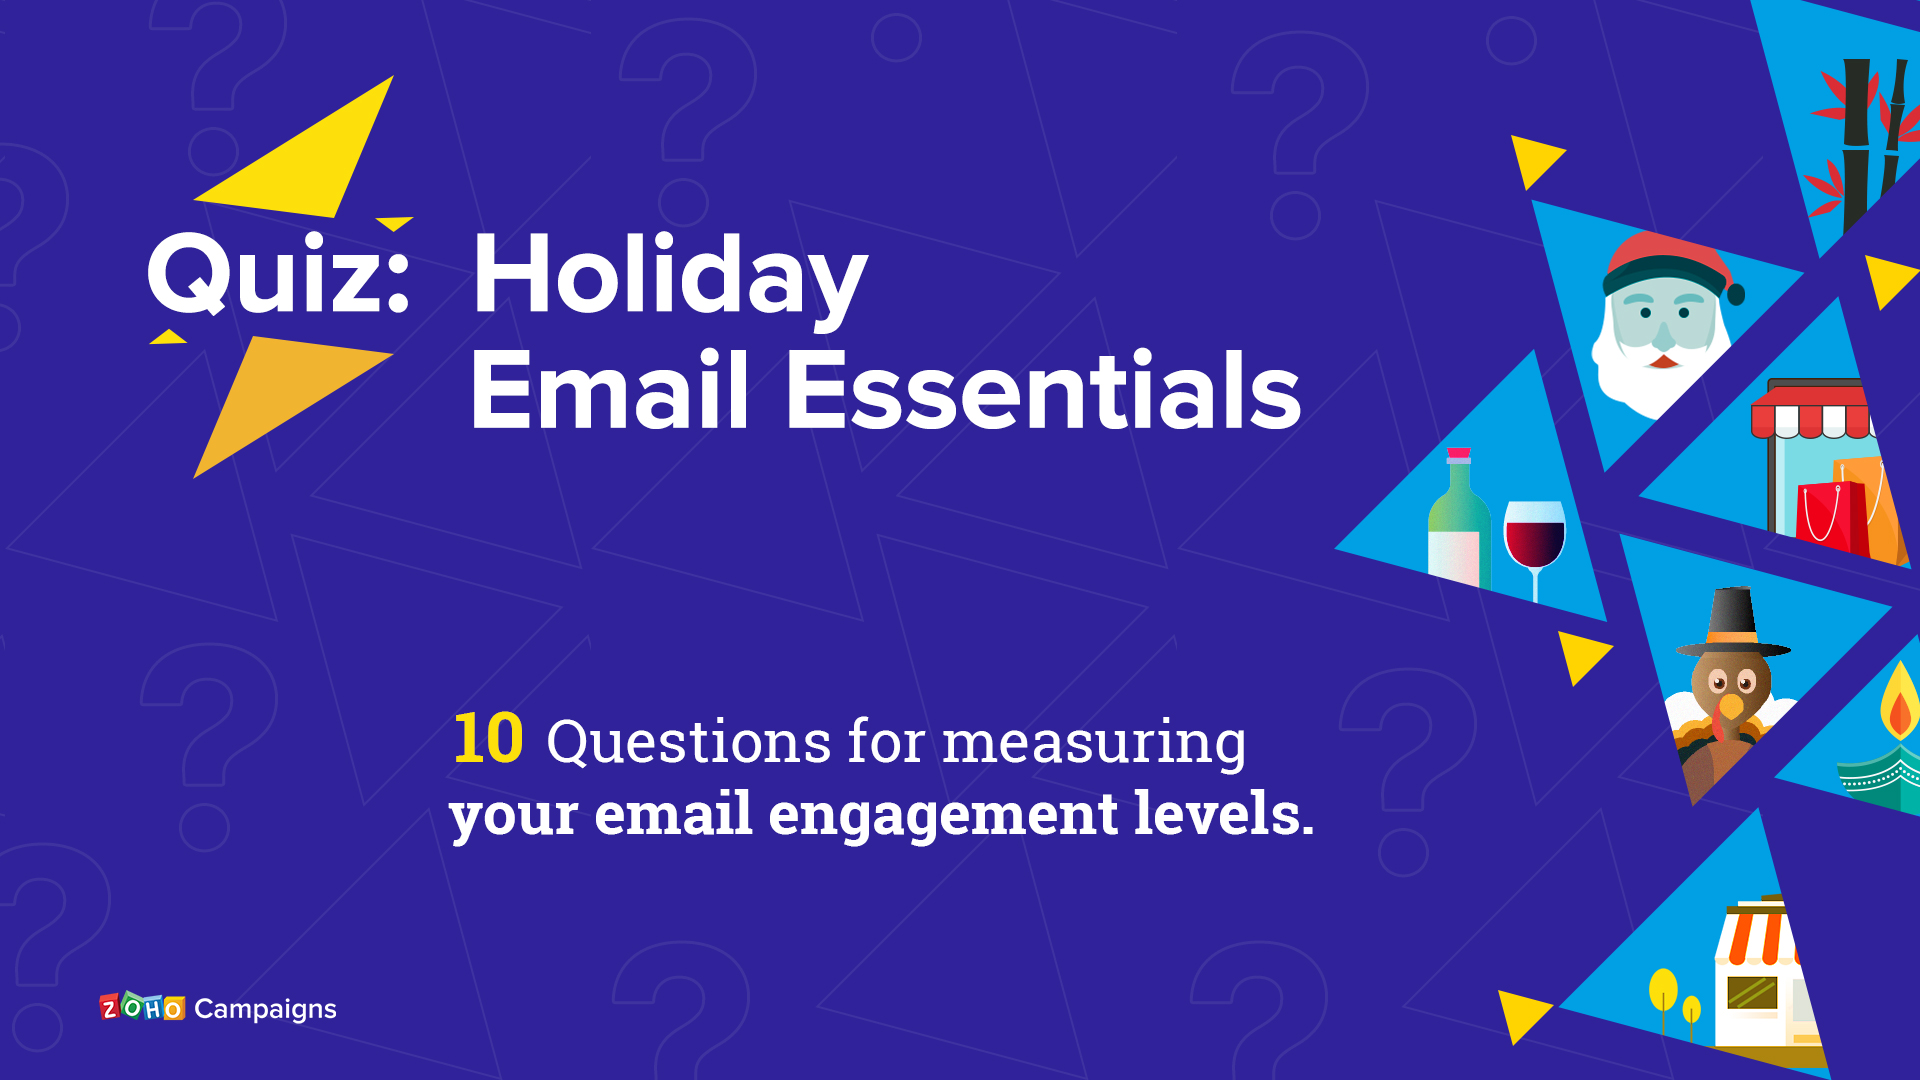 Holiday Email Essentials – An email marketing quiz to find your engagement levels